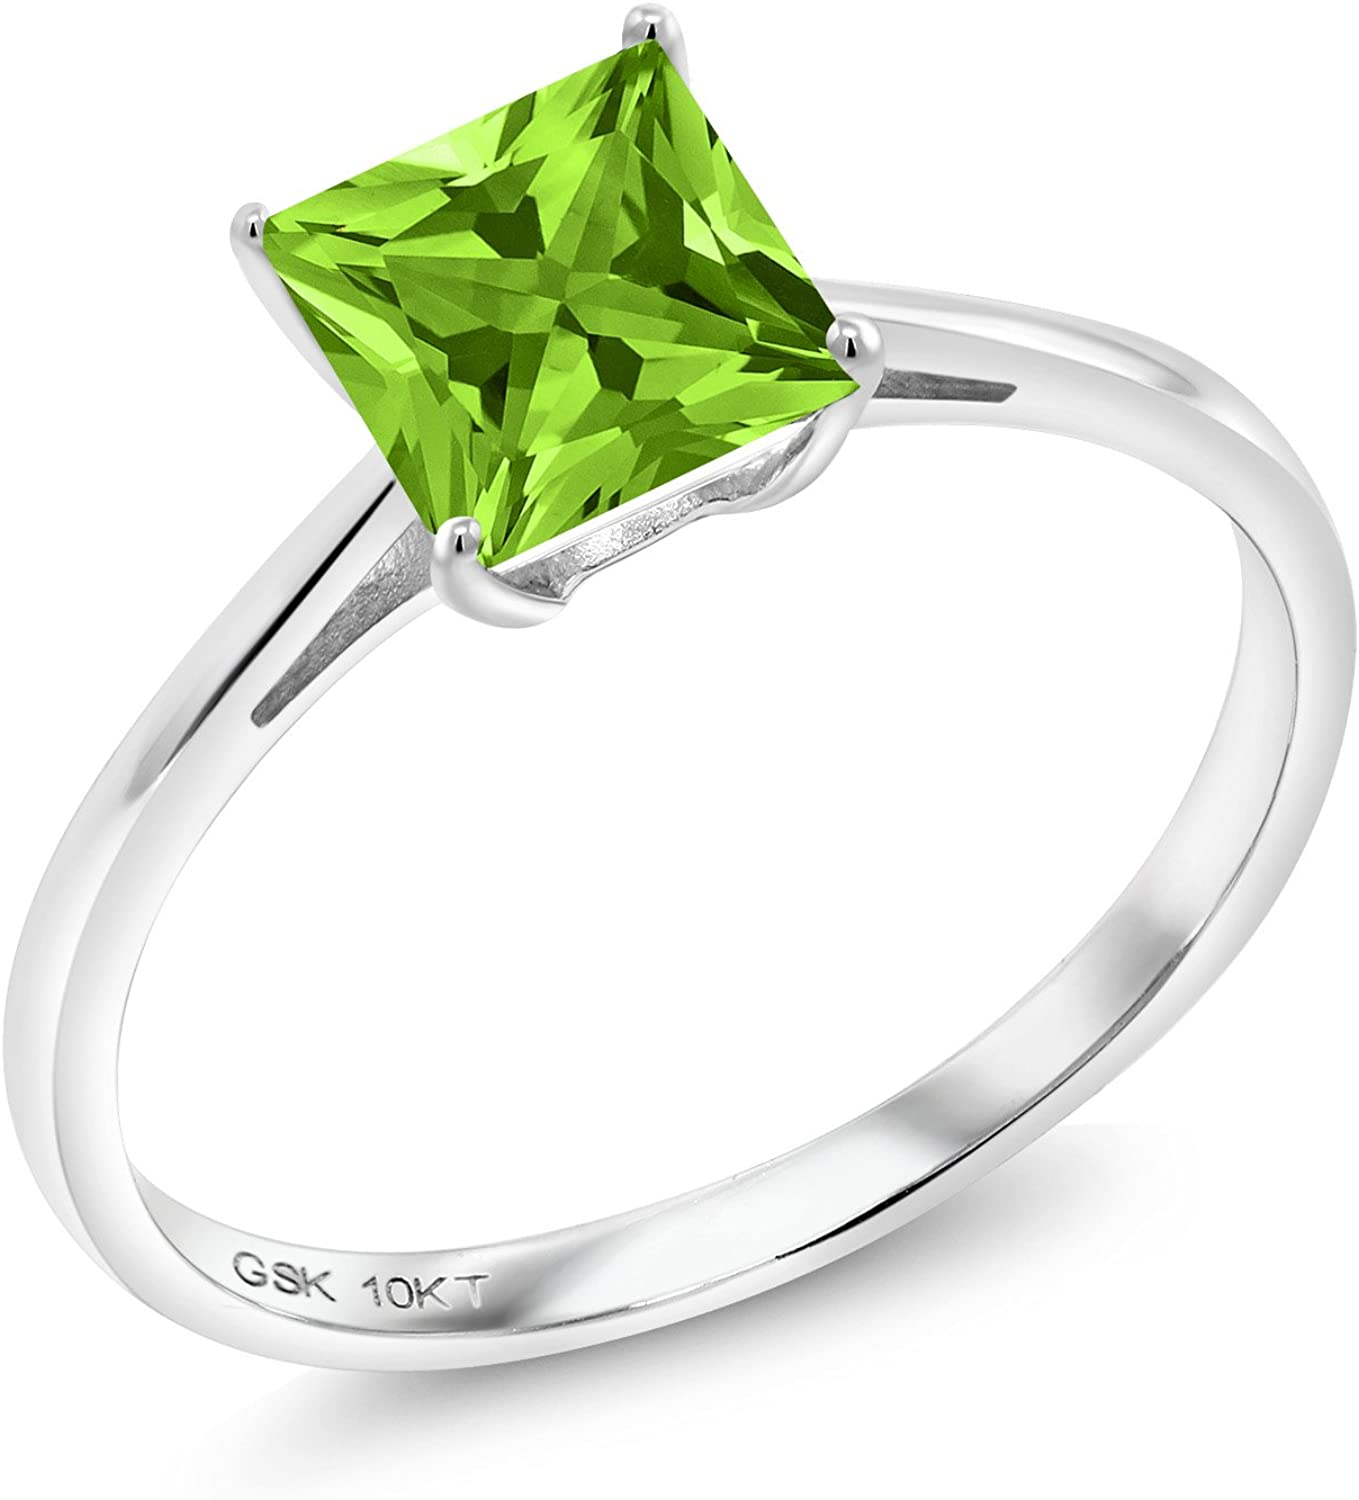 Gem Stone King 10K White Gold Green Peridot Women's Engagement Ring (1.03 Ct Princess Cut, Gemstone Birthstone, Available in size 5, 6, 7, 8, 9)